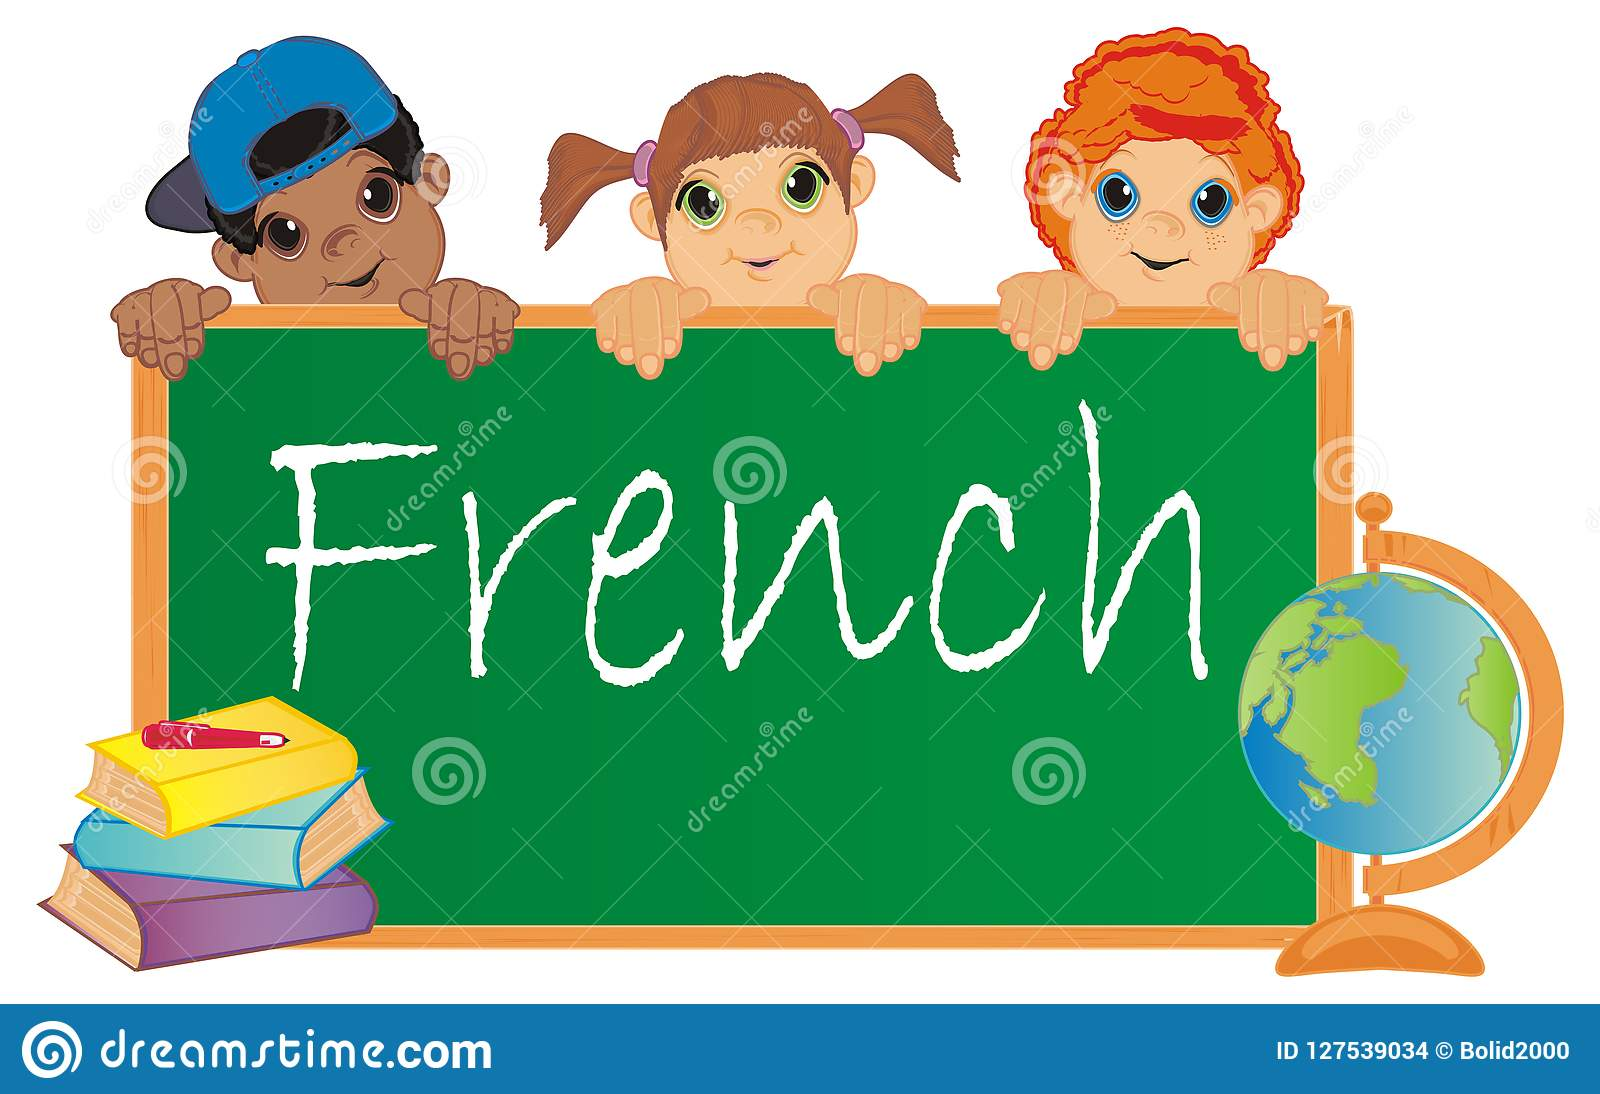 Image result for children learning french clipart